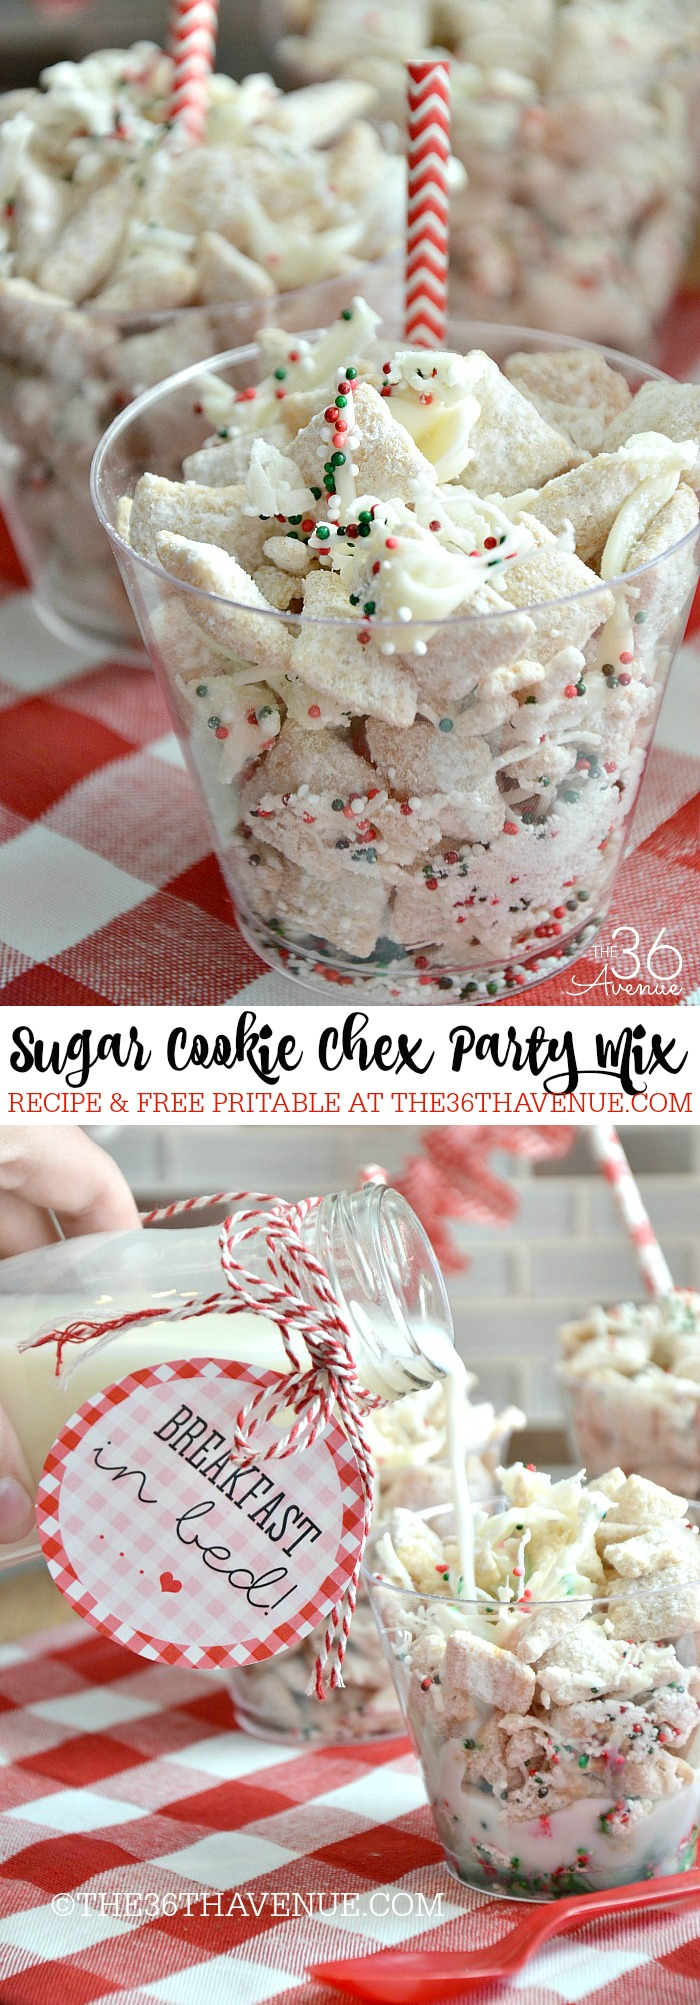 Snack Recipe and Printable the36thavenue.com